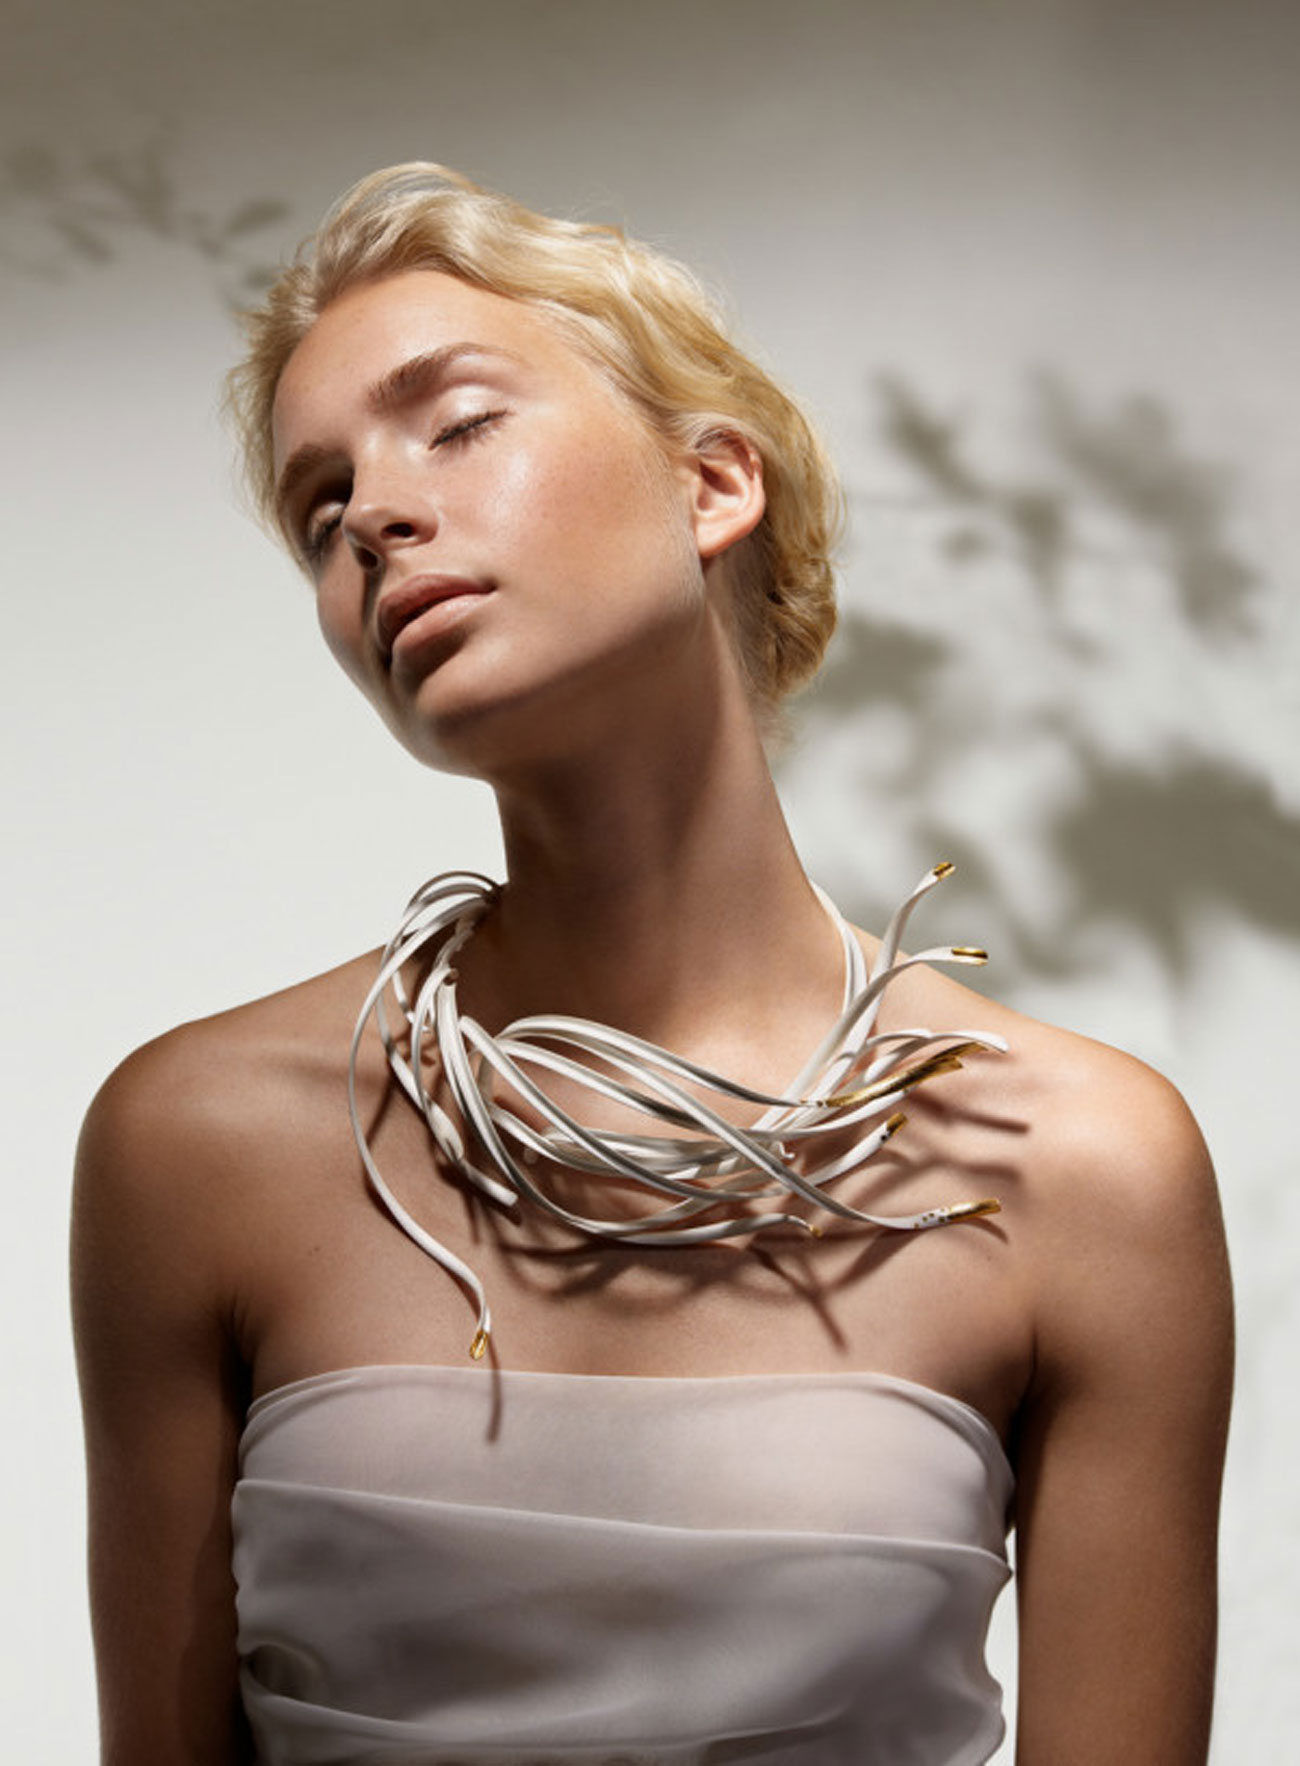 Nordic Wind necklace